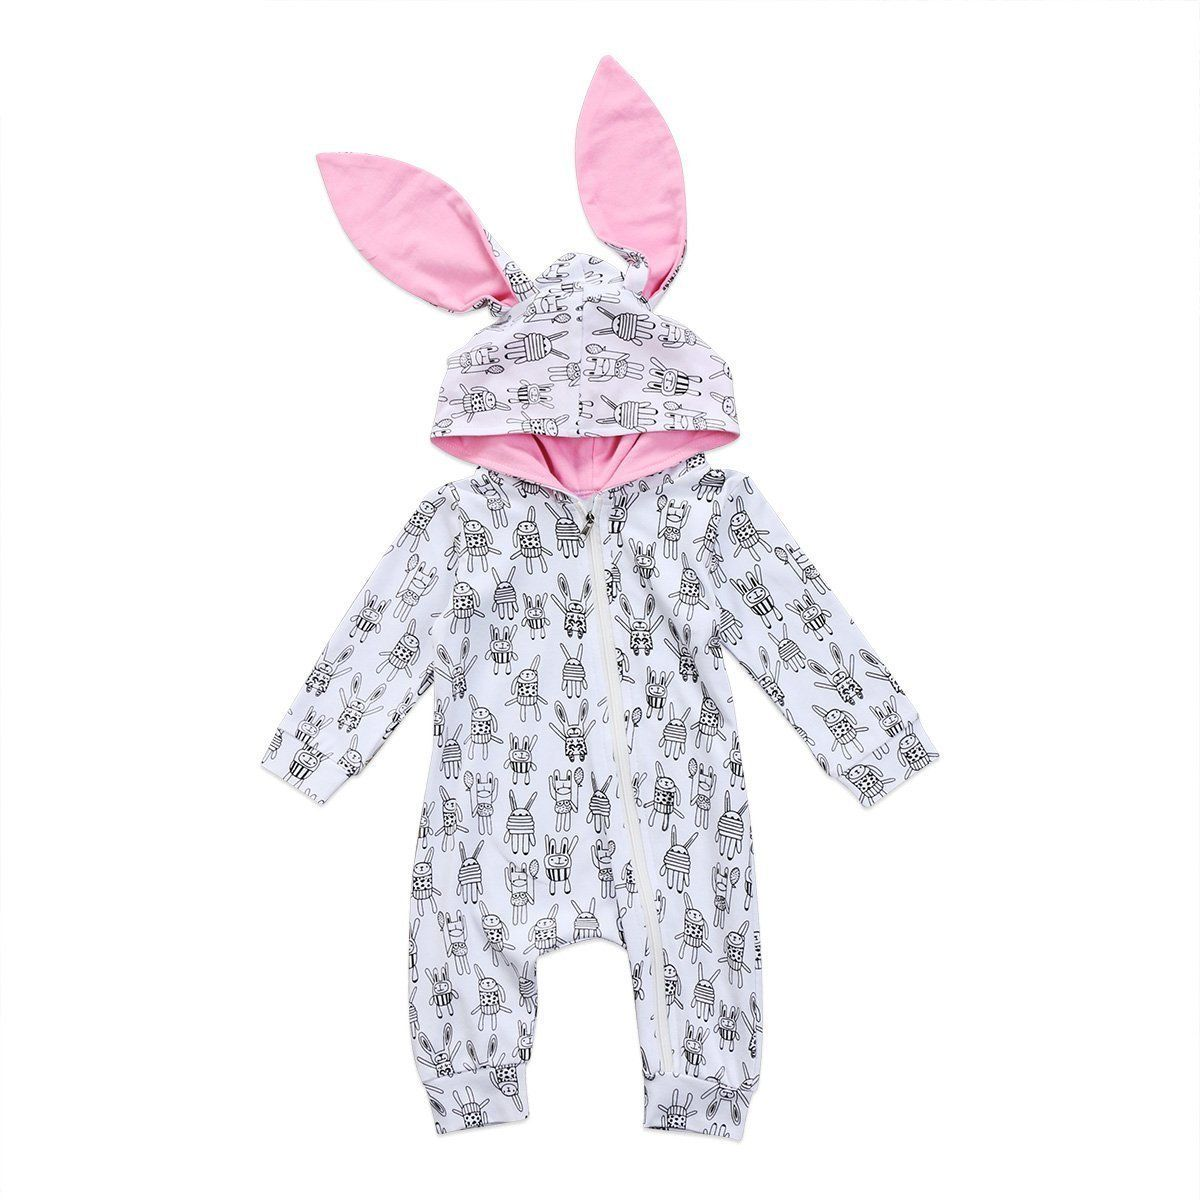 Boys' Baby Clothing Newborn Baby Clothes Rabbit 3d Ear Hooded Baby Rompers Long Sleeve Jumpsuit Overall For Kids Clothing Costume Playsuit Clothes Bodysuits